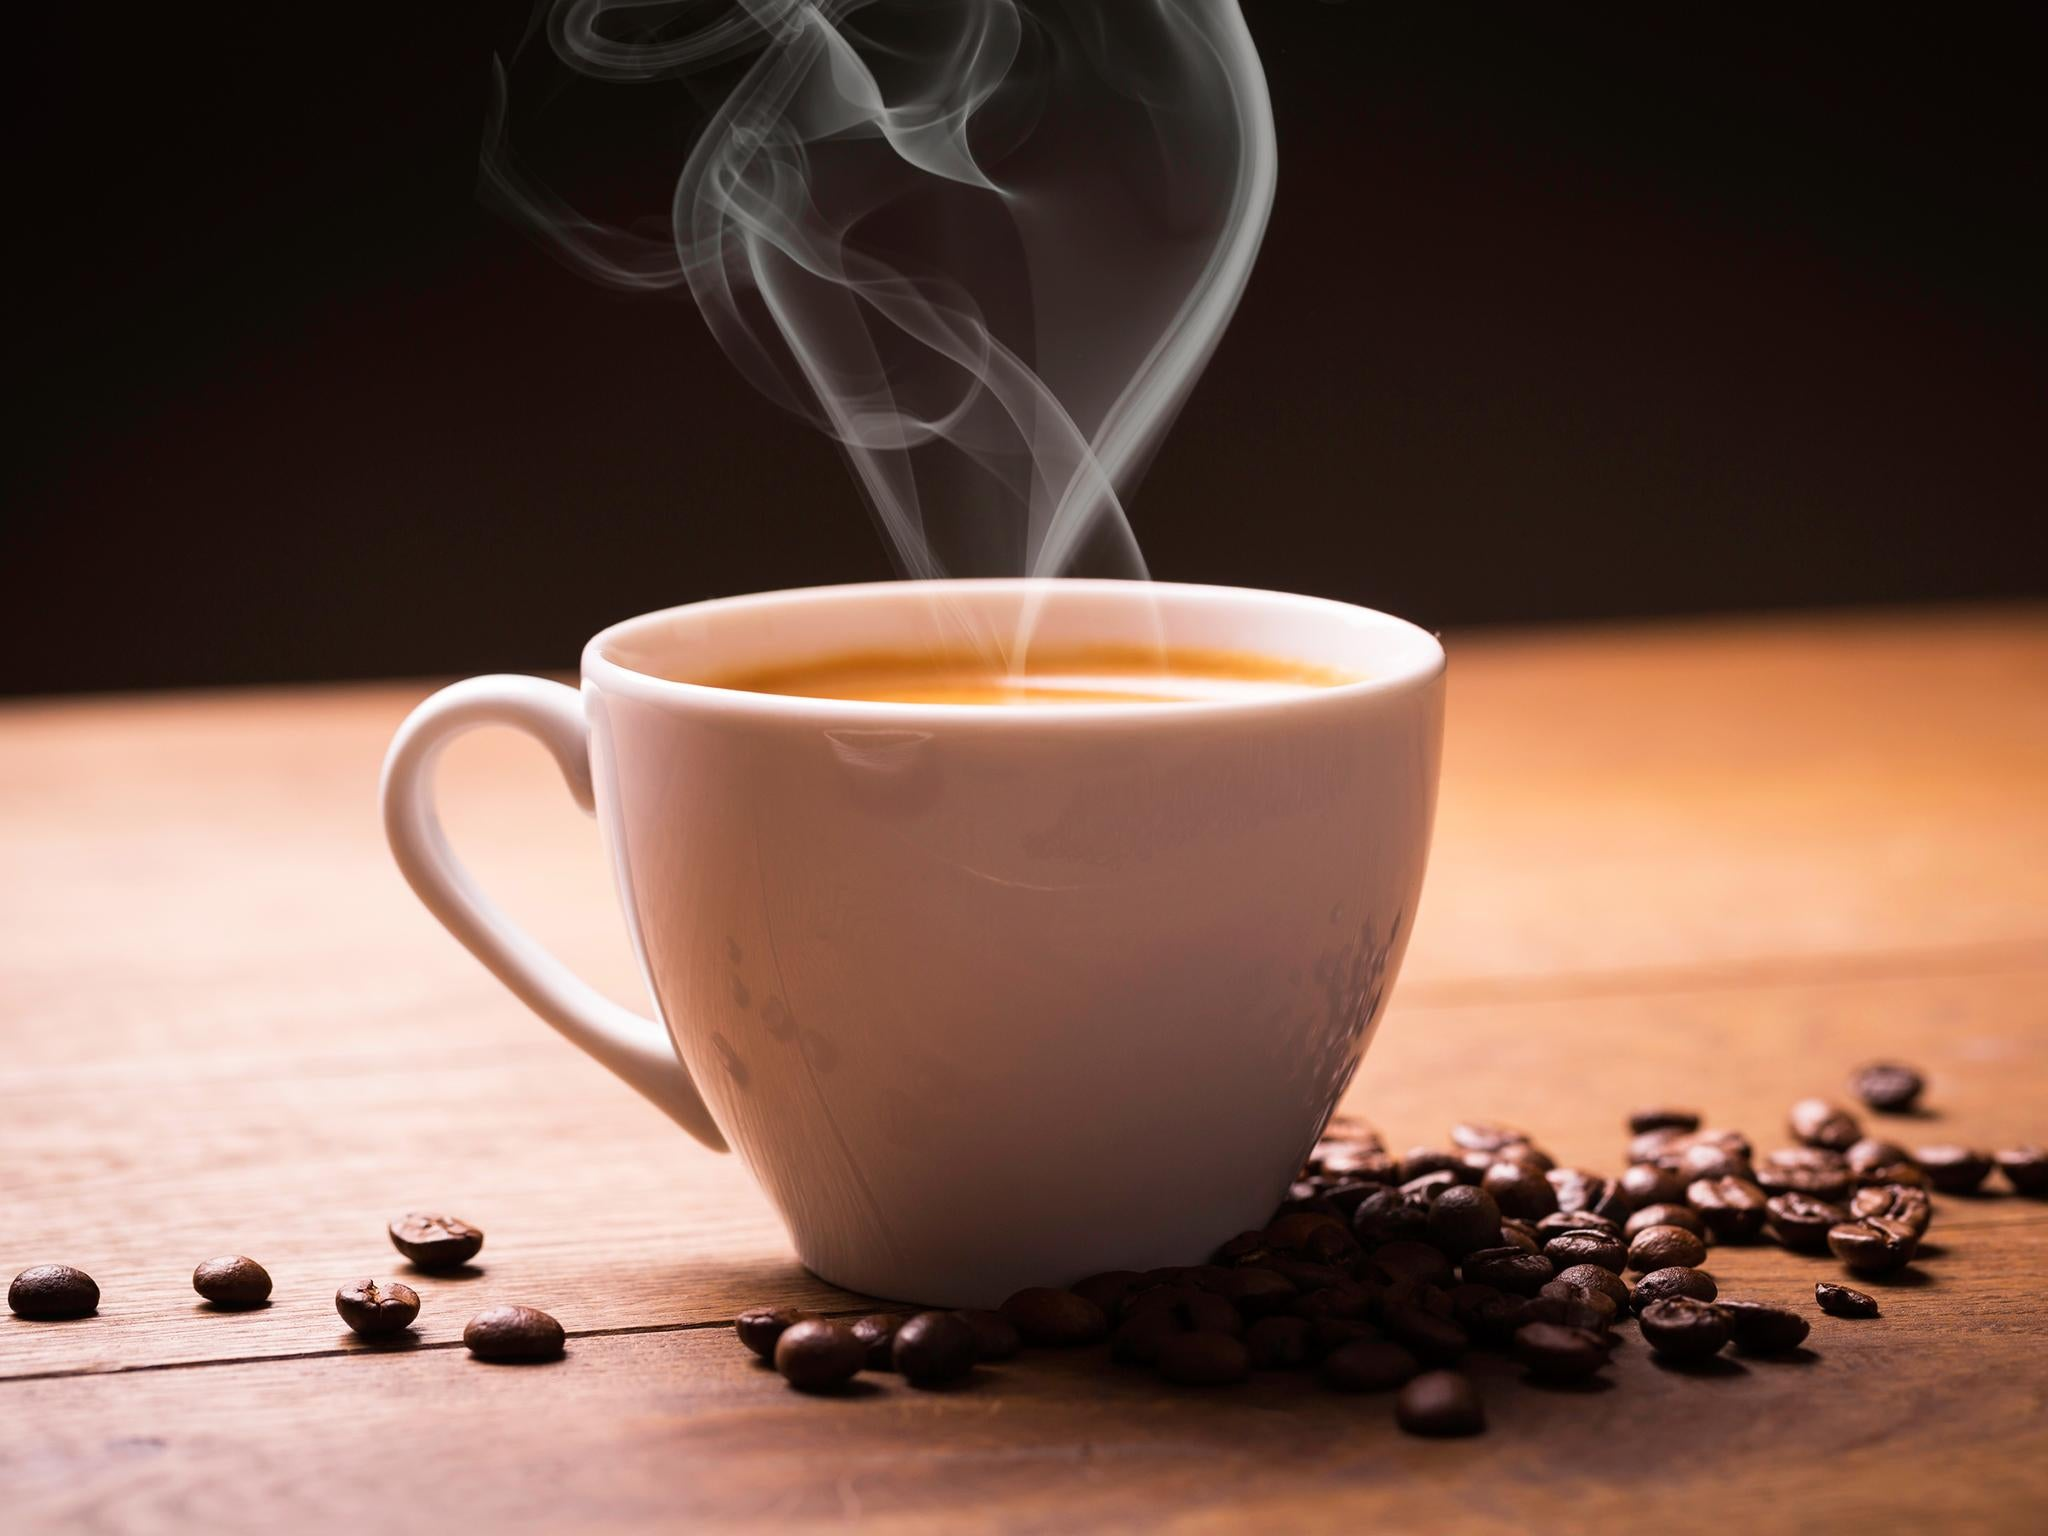 https://static.independent.co.uk/s3fs-public/thumbnails/image/2016/06/15/14/pp-hot-coffee-rf-istock.jpg